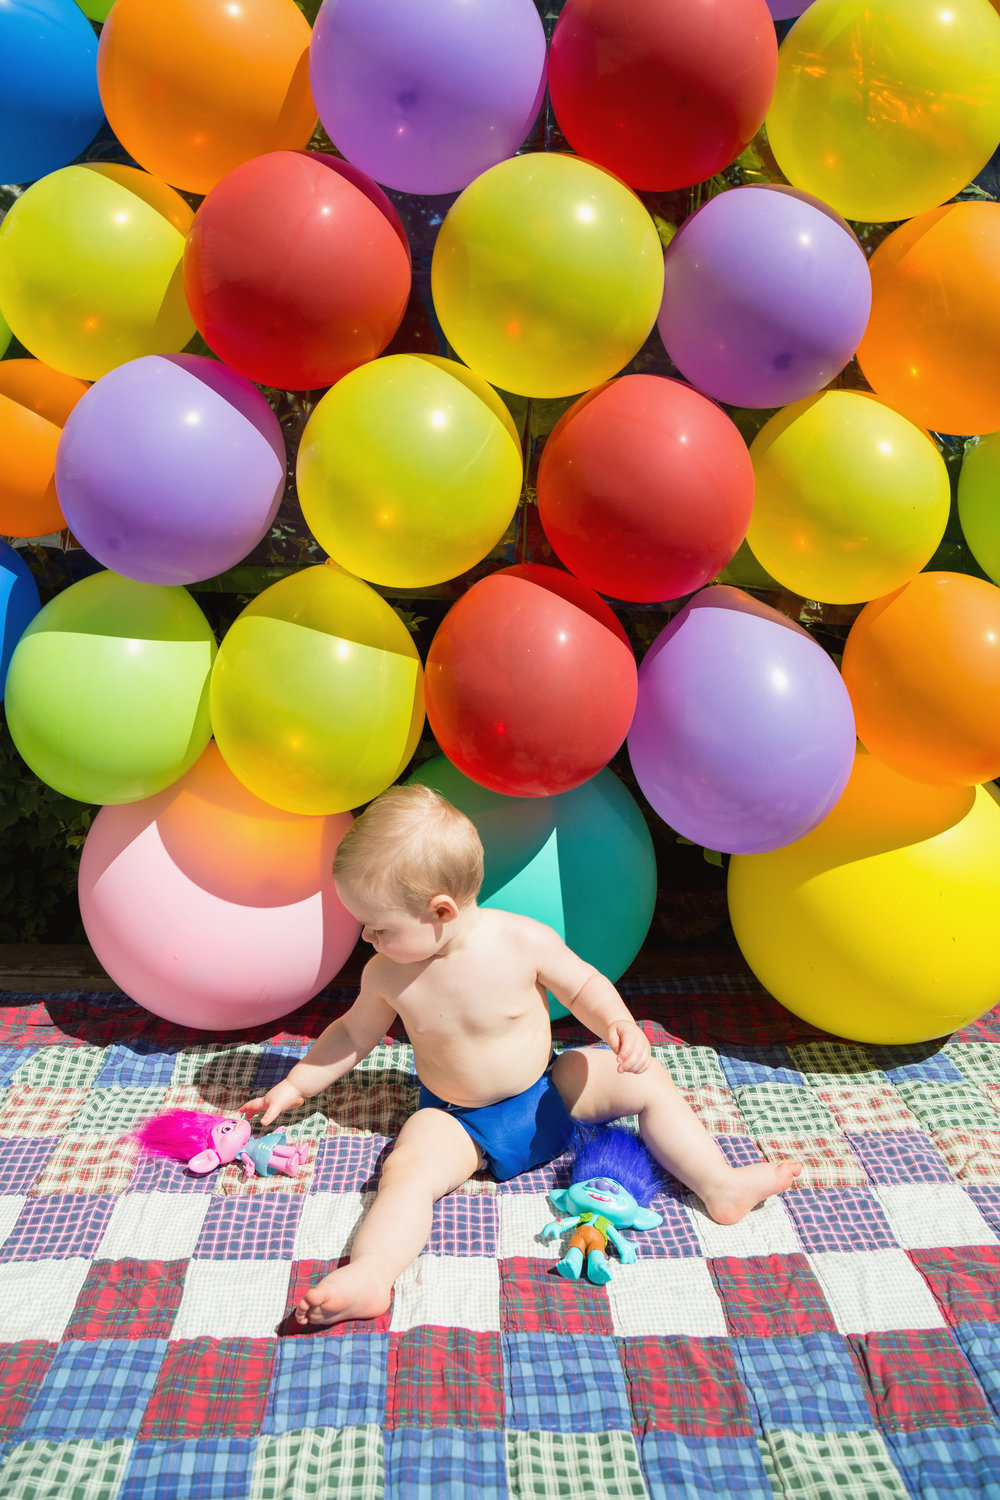 Theo_1stbday_06.jpg